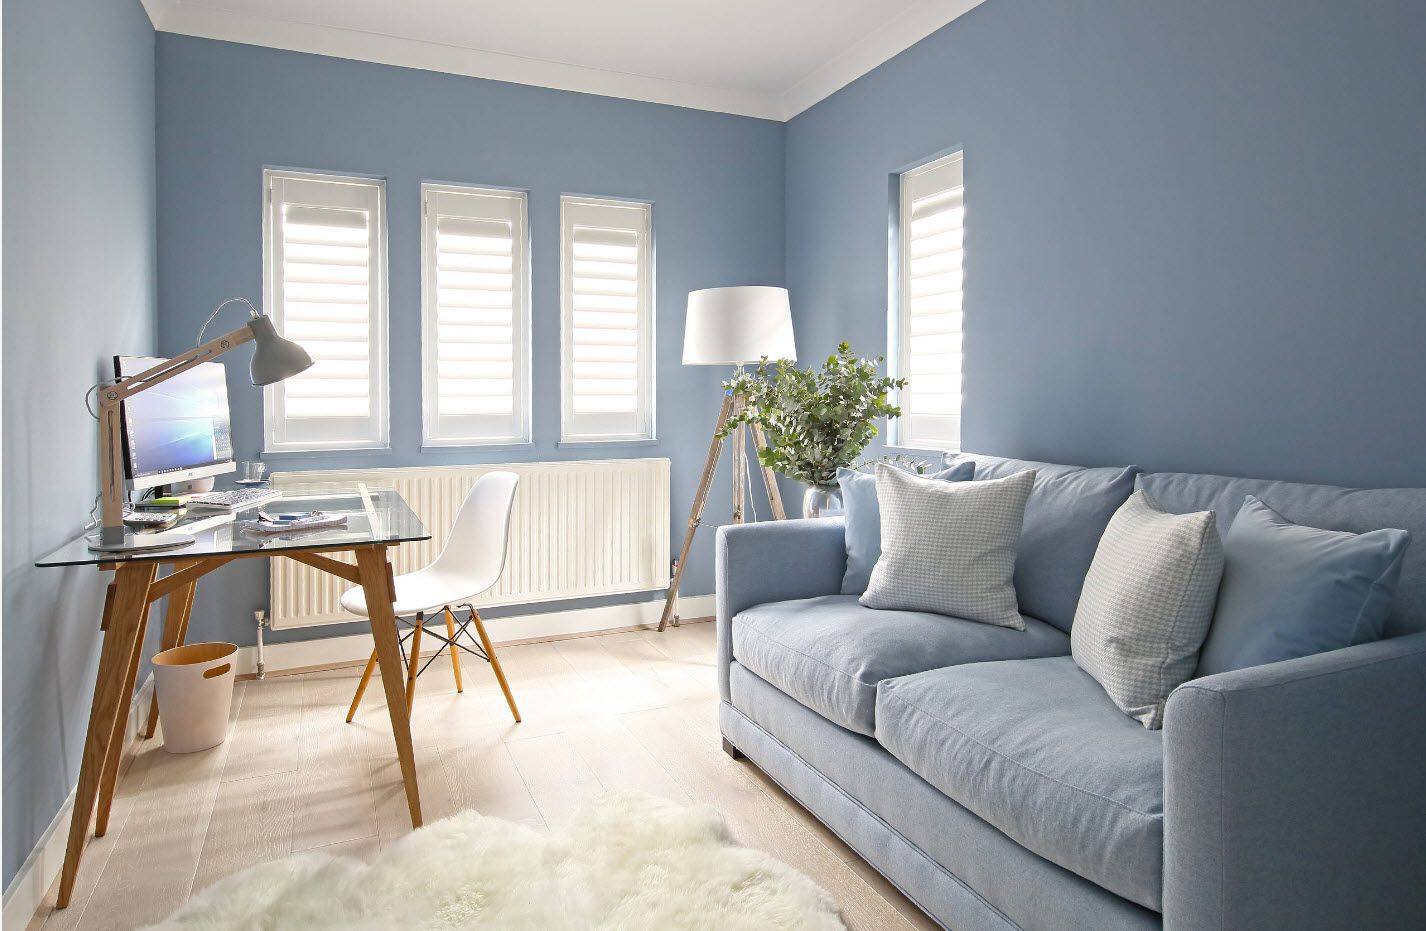 Blue room with blue soft in the identical tint and fluffy white rug at the center